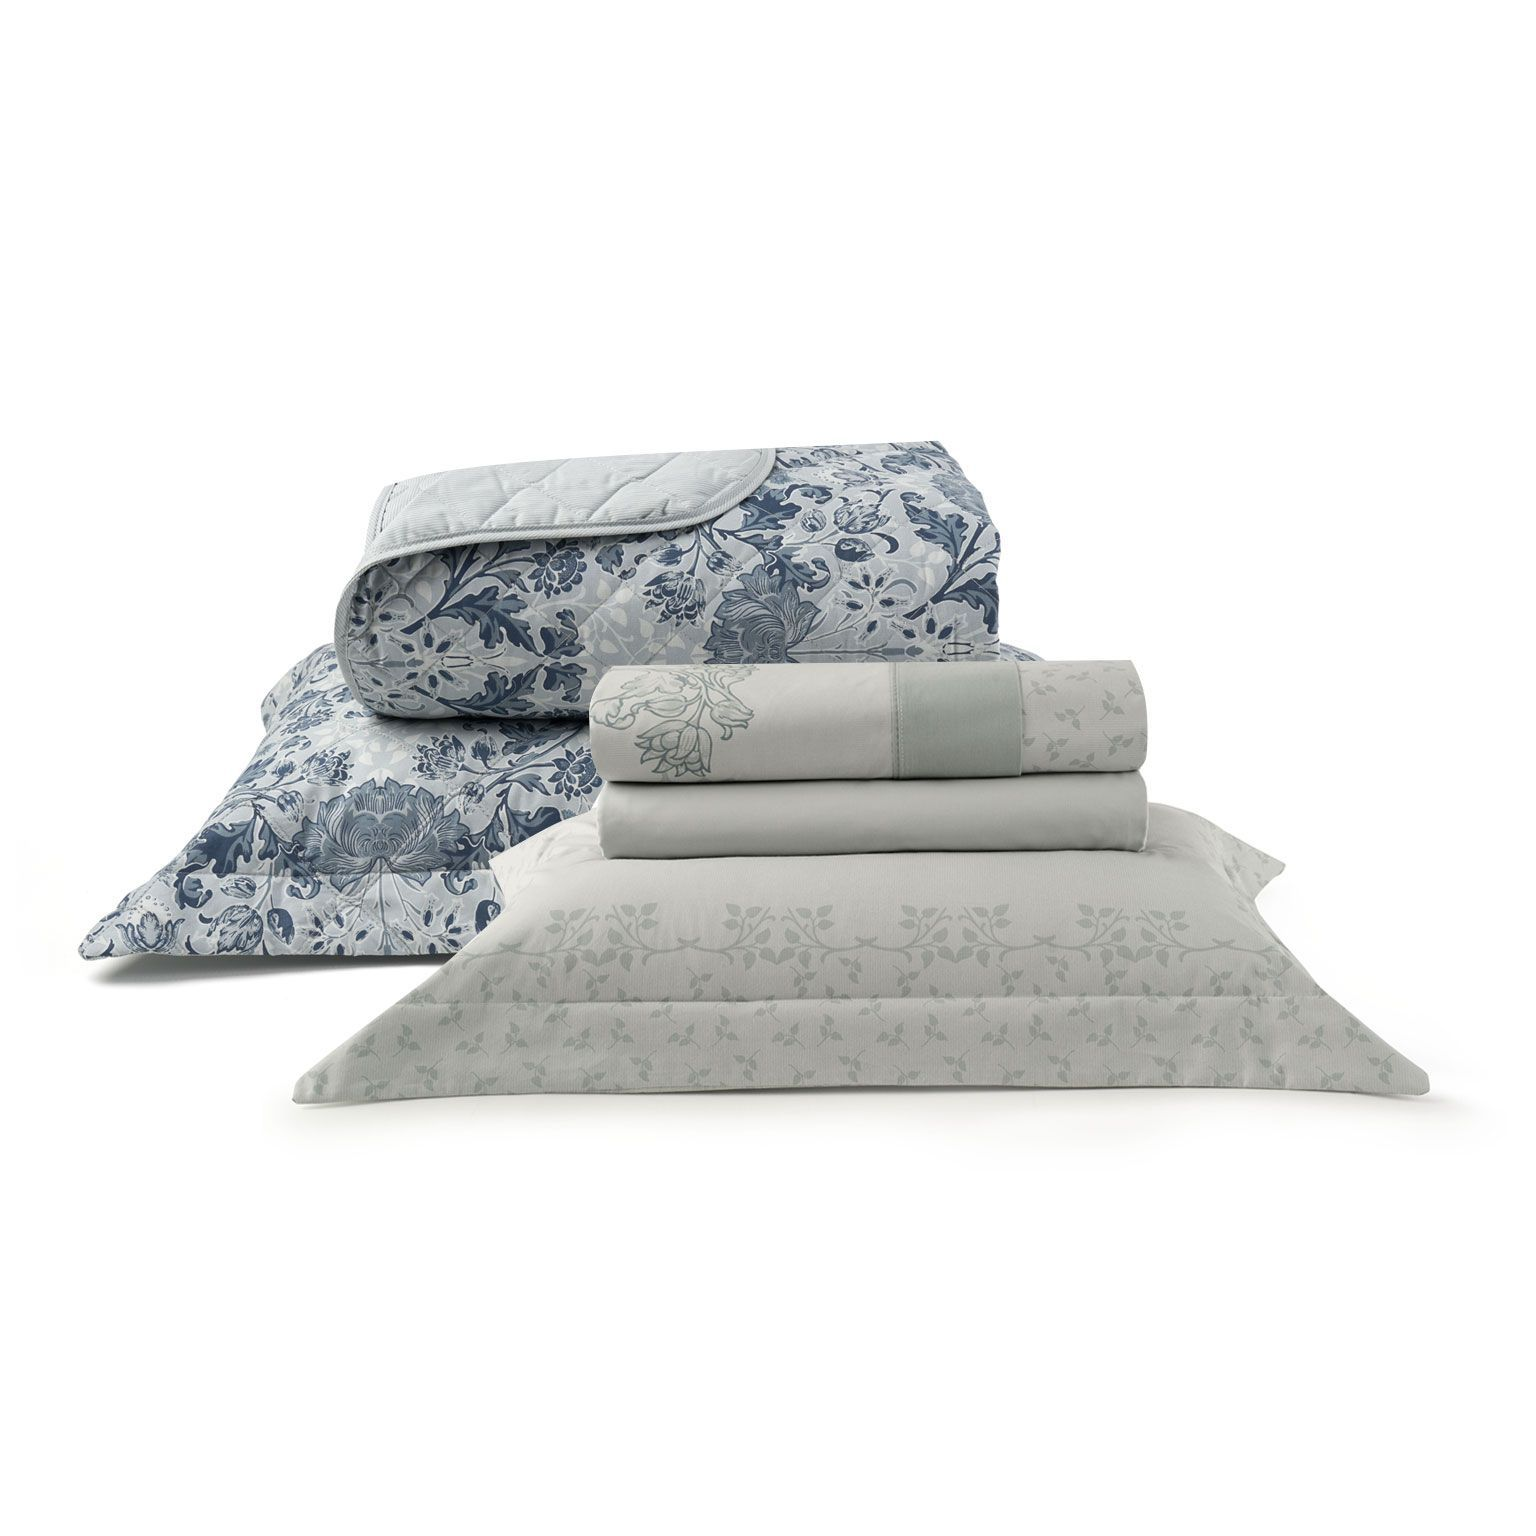 Kit Cama Toque de Seda Leaf Simples